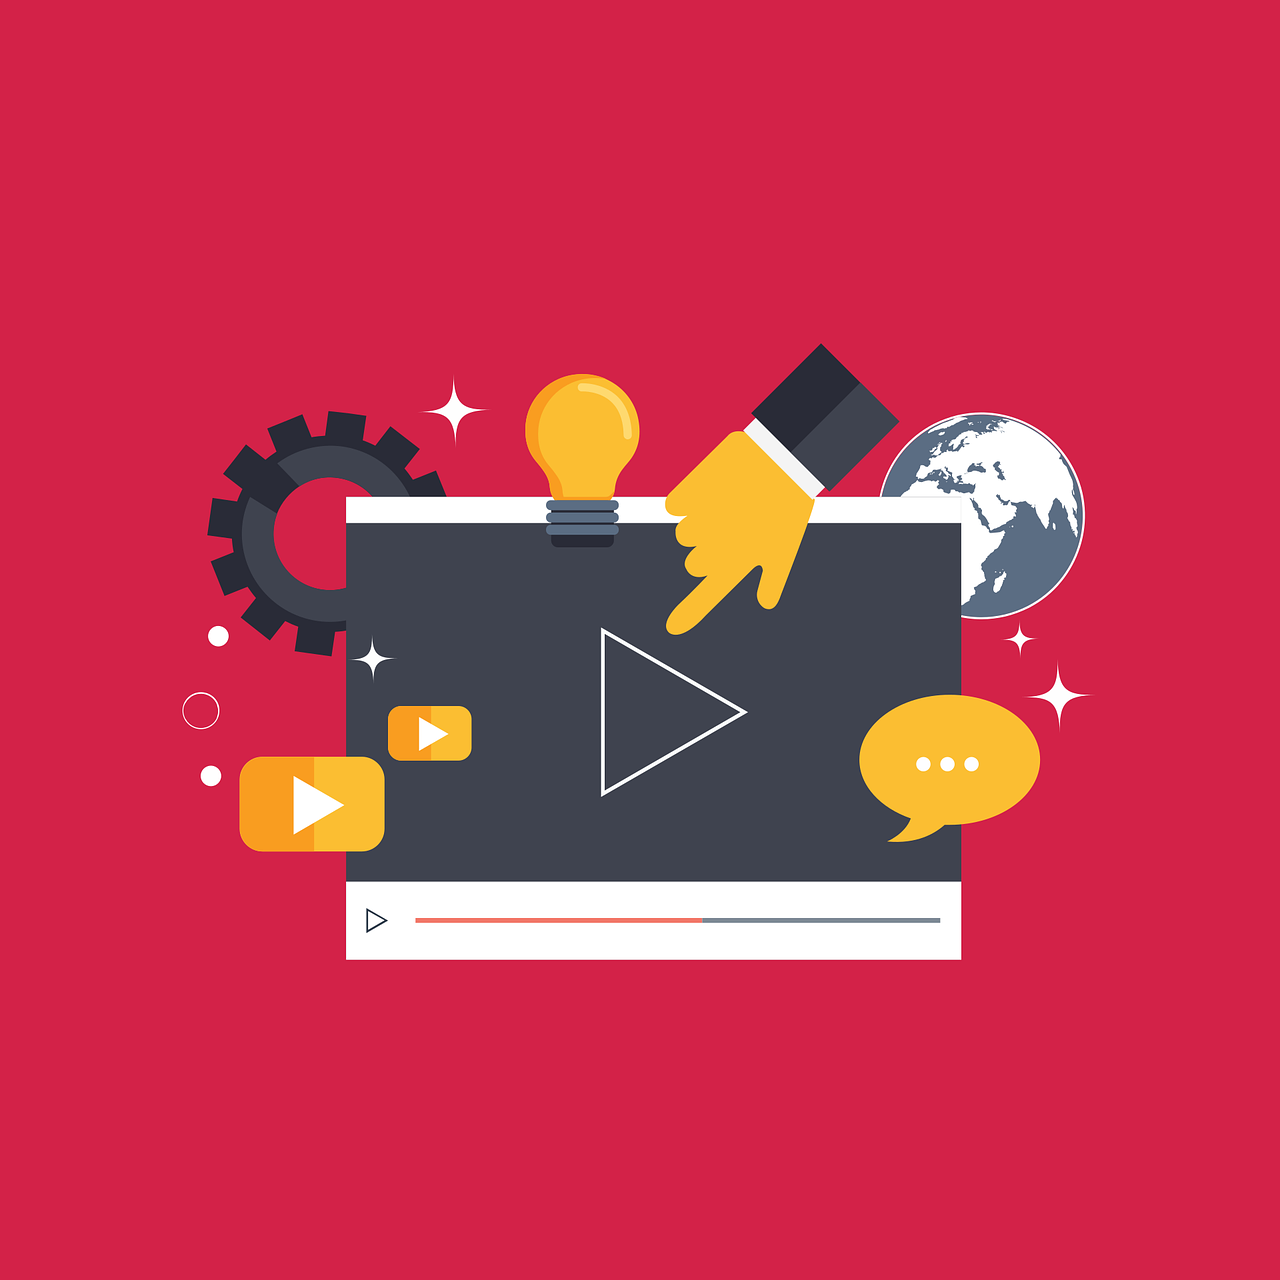 Leverage The YouTube Contributor Program To Expand Your Reach